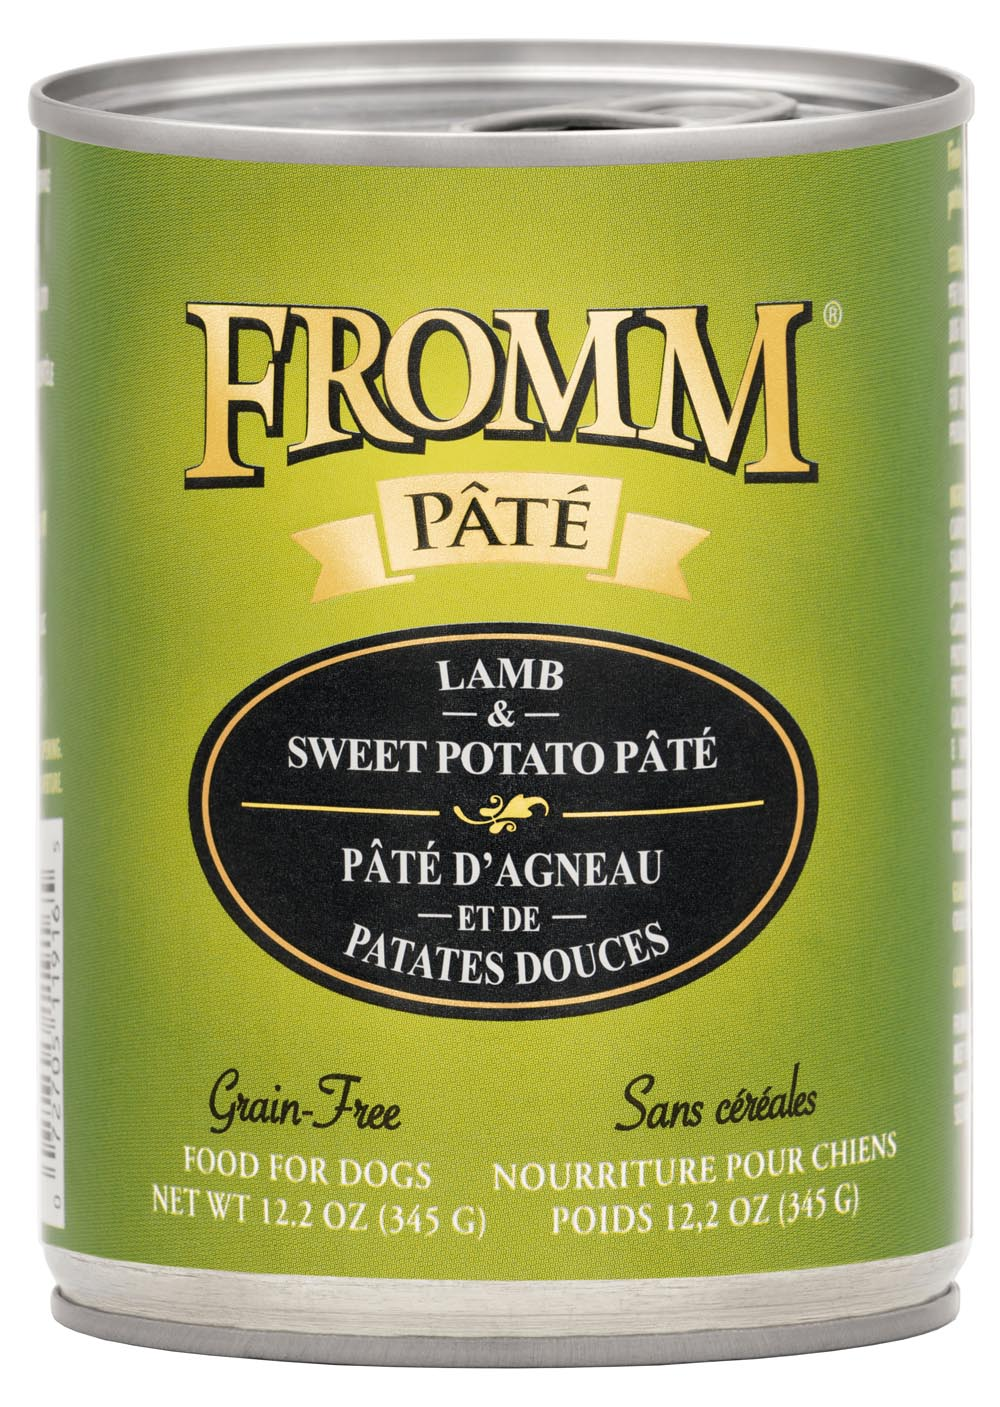 Fromm Lamb & Sweet Potato Pate Food for Dogs, 12.2 OZ